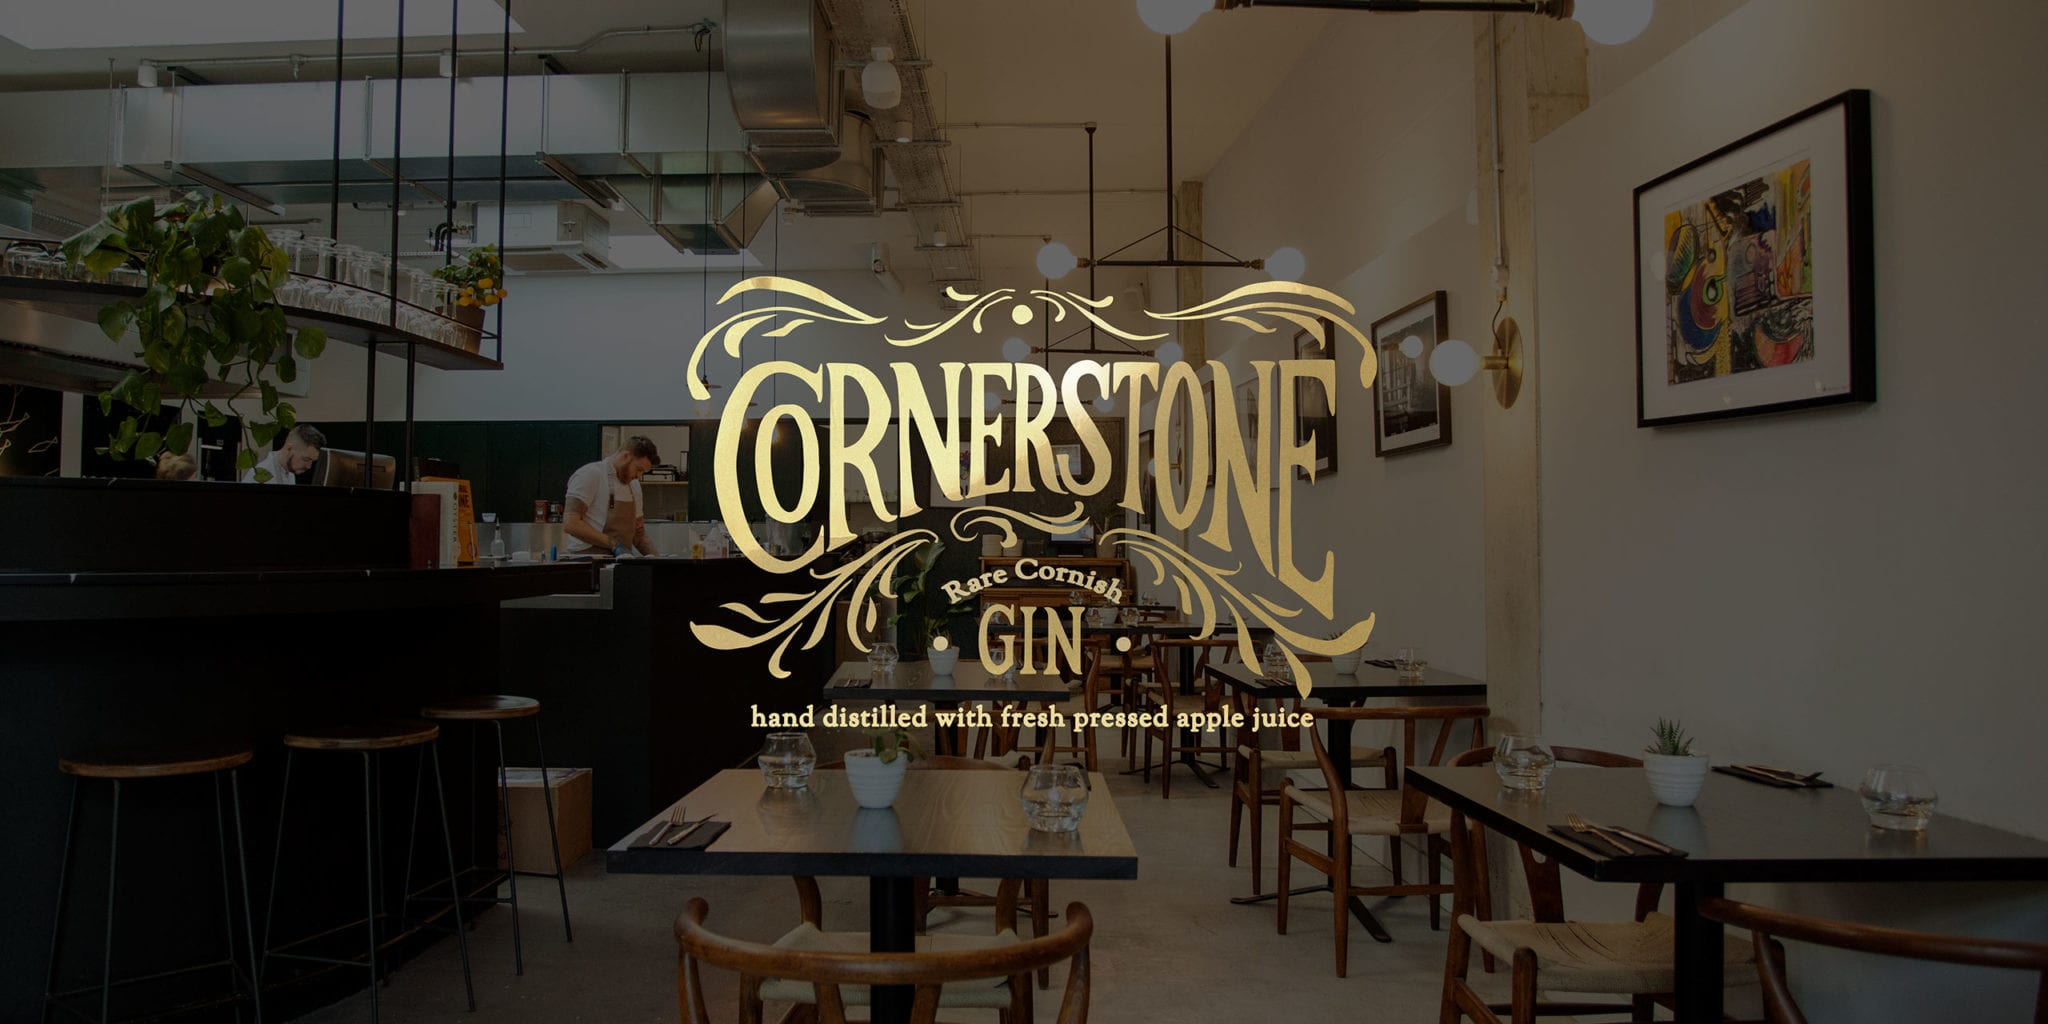 The Cornerstone logo and gin branding on top of a photograph of the Cornerstone Hackney Wick London restaurant